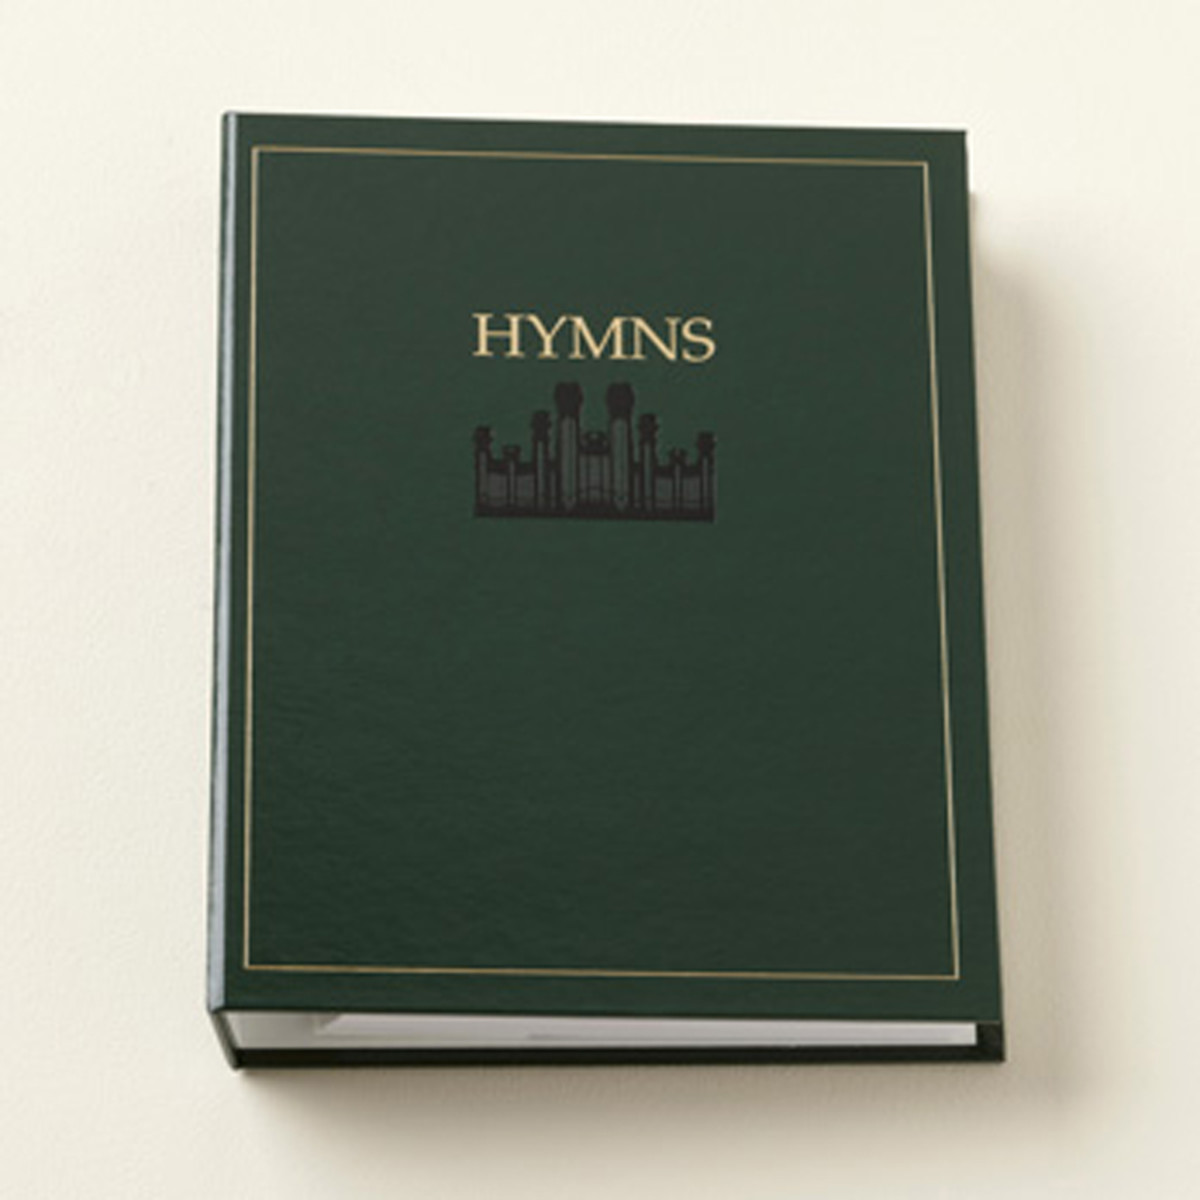 The published hymnal.